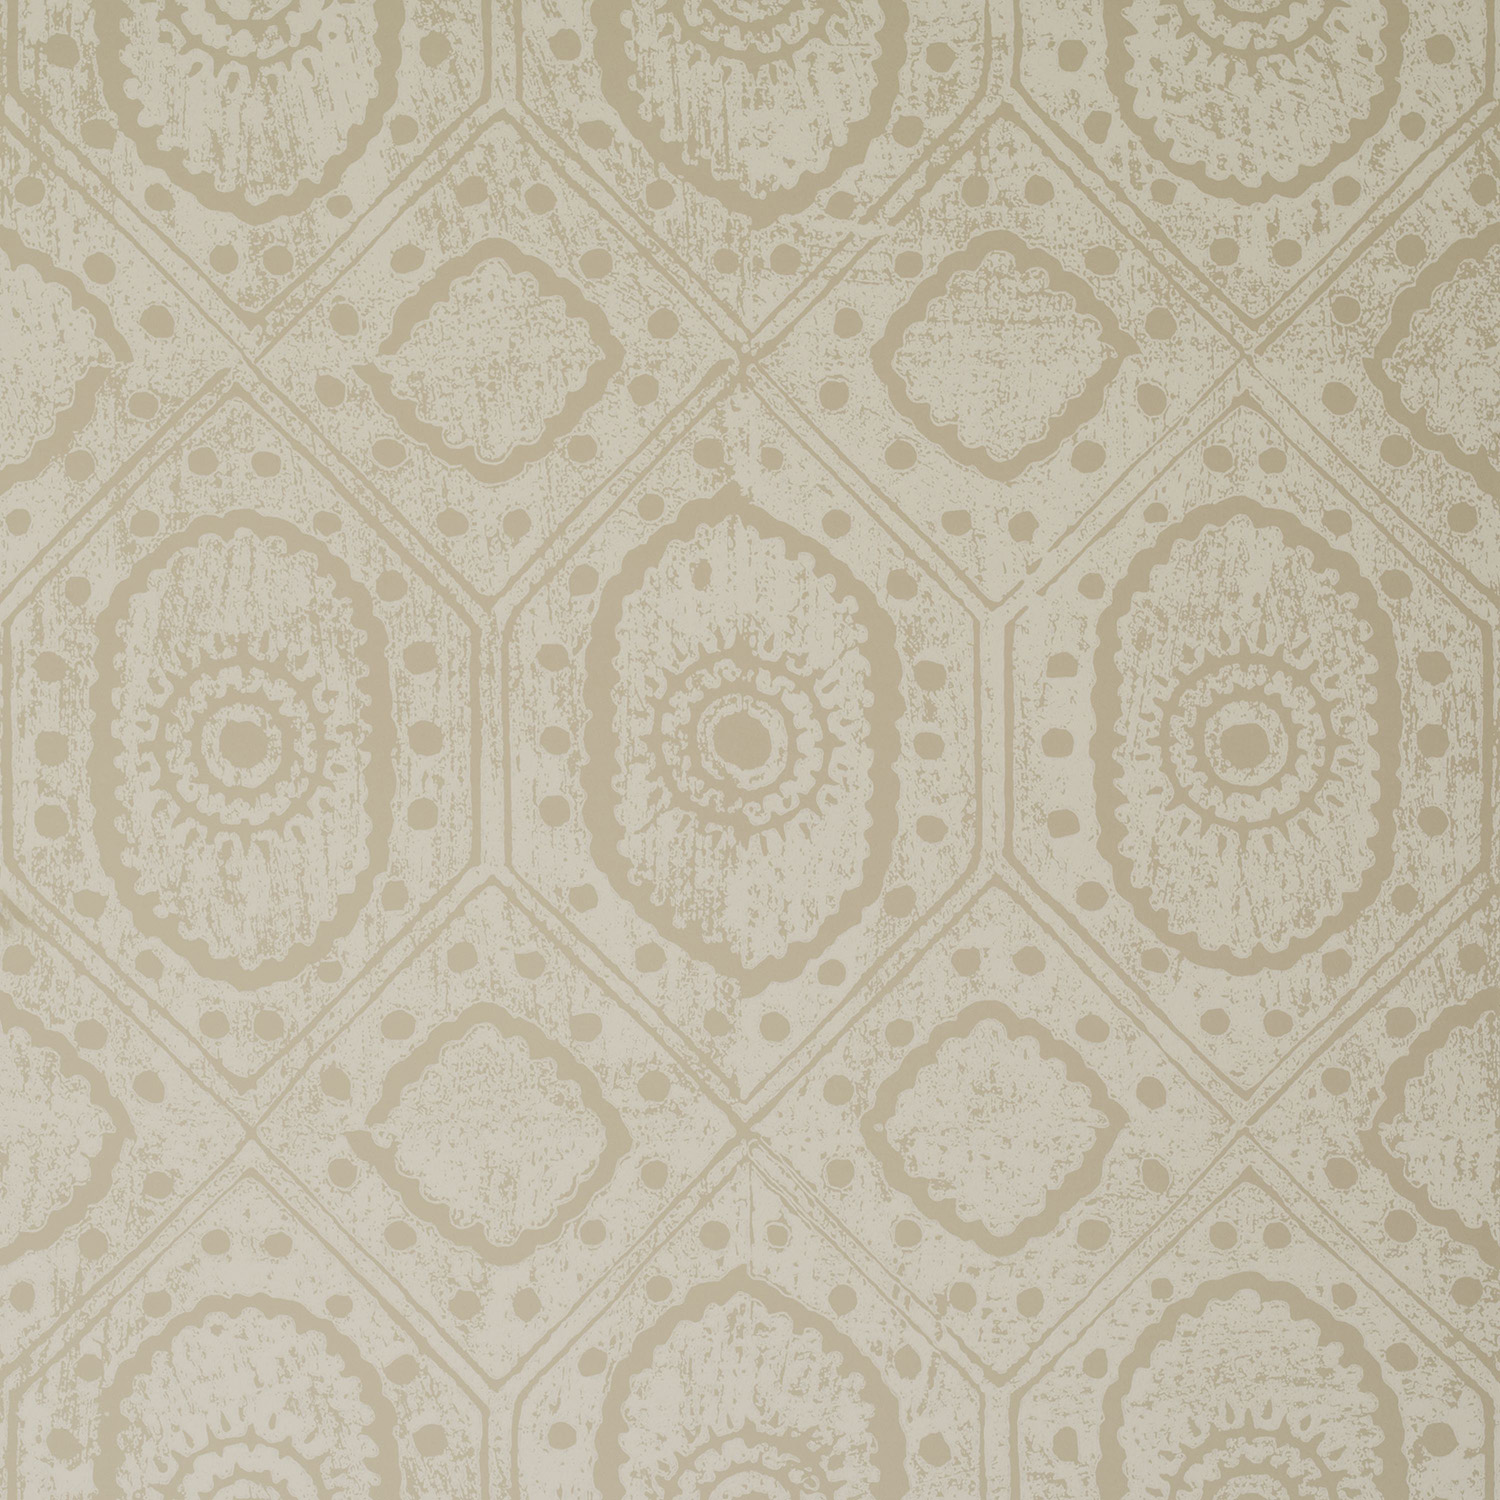 <p><strong>DIAMOND</strong>cream 900-06<a href=/the-peggy-angus-collection/diamond-cream-900-06>More →</a></p>